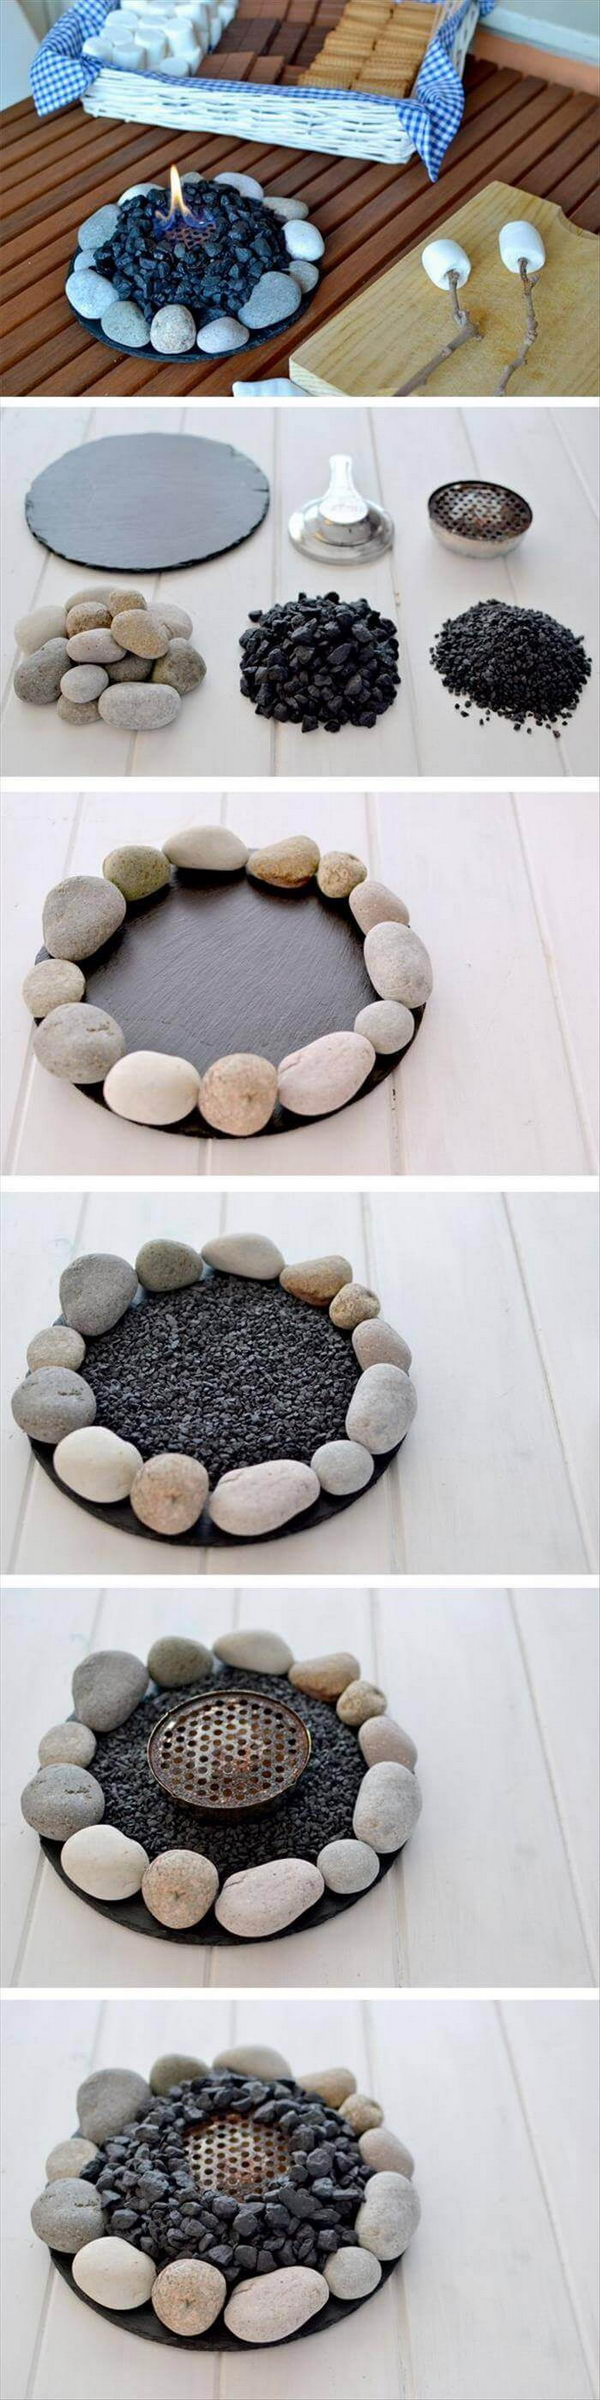 River Stone Table top Firepit.